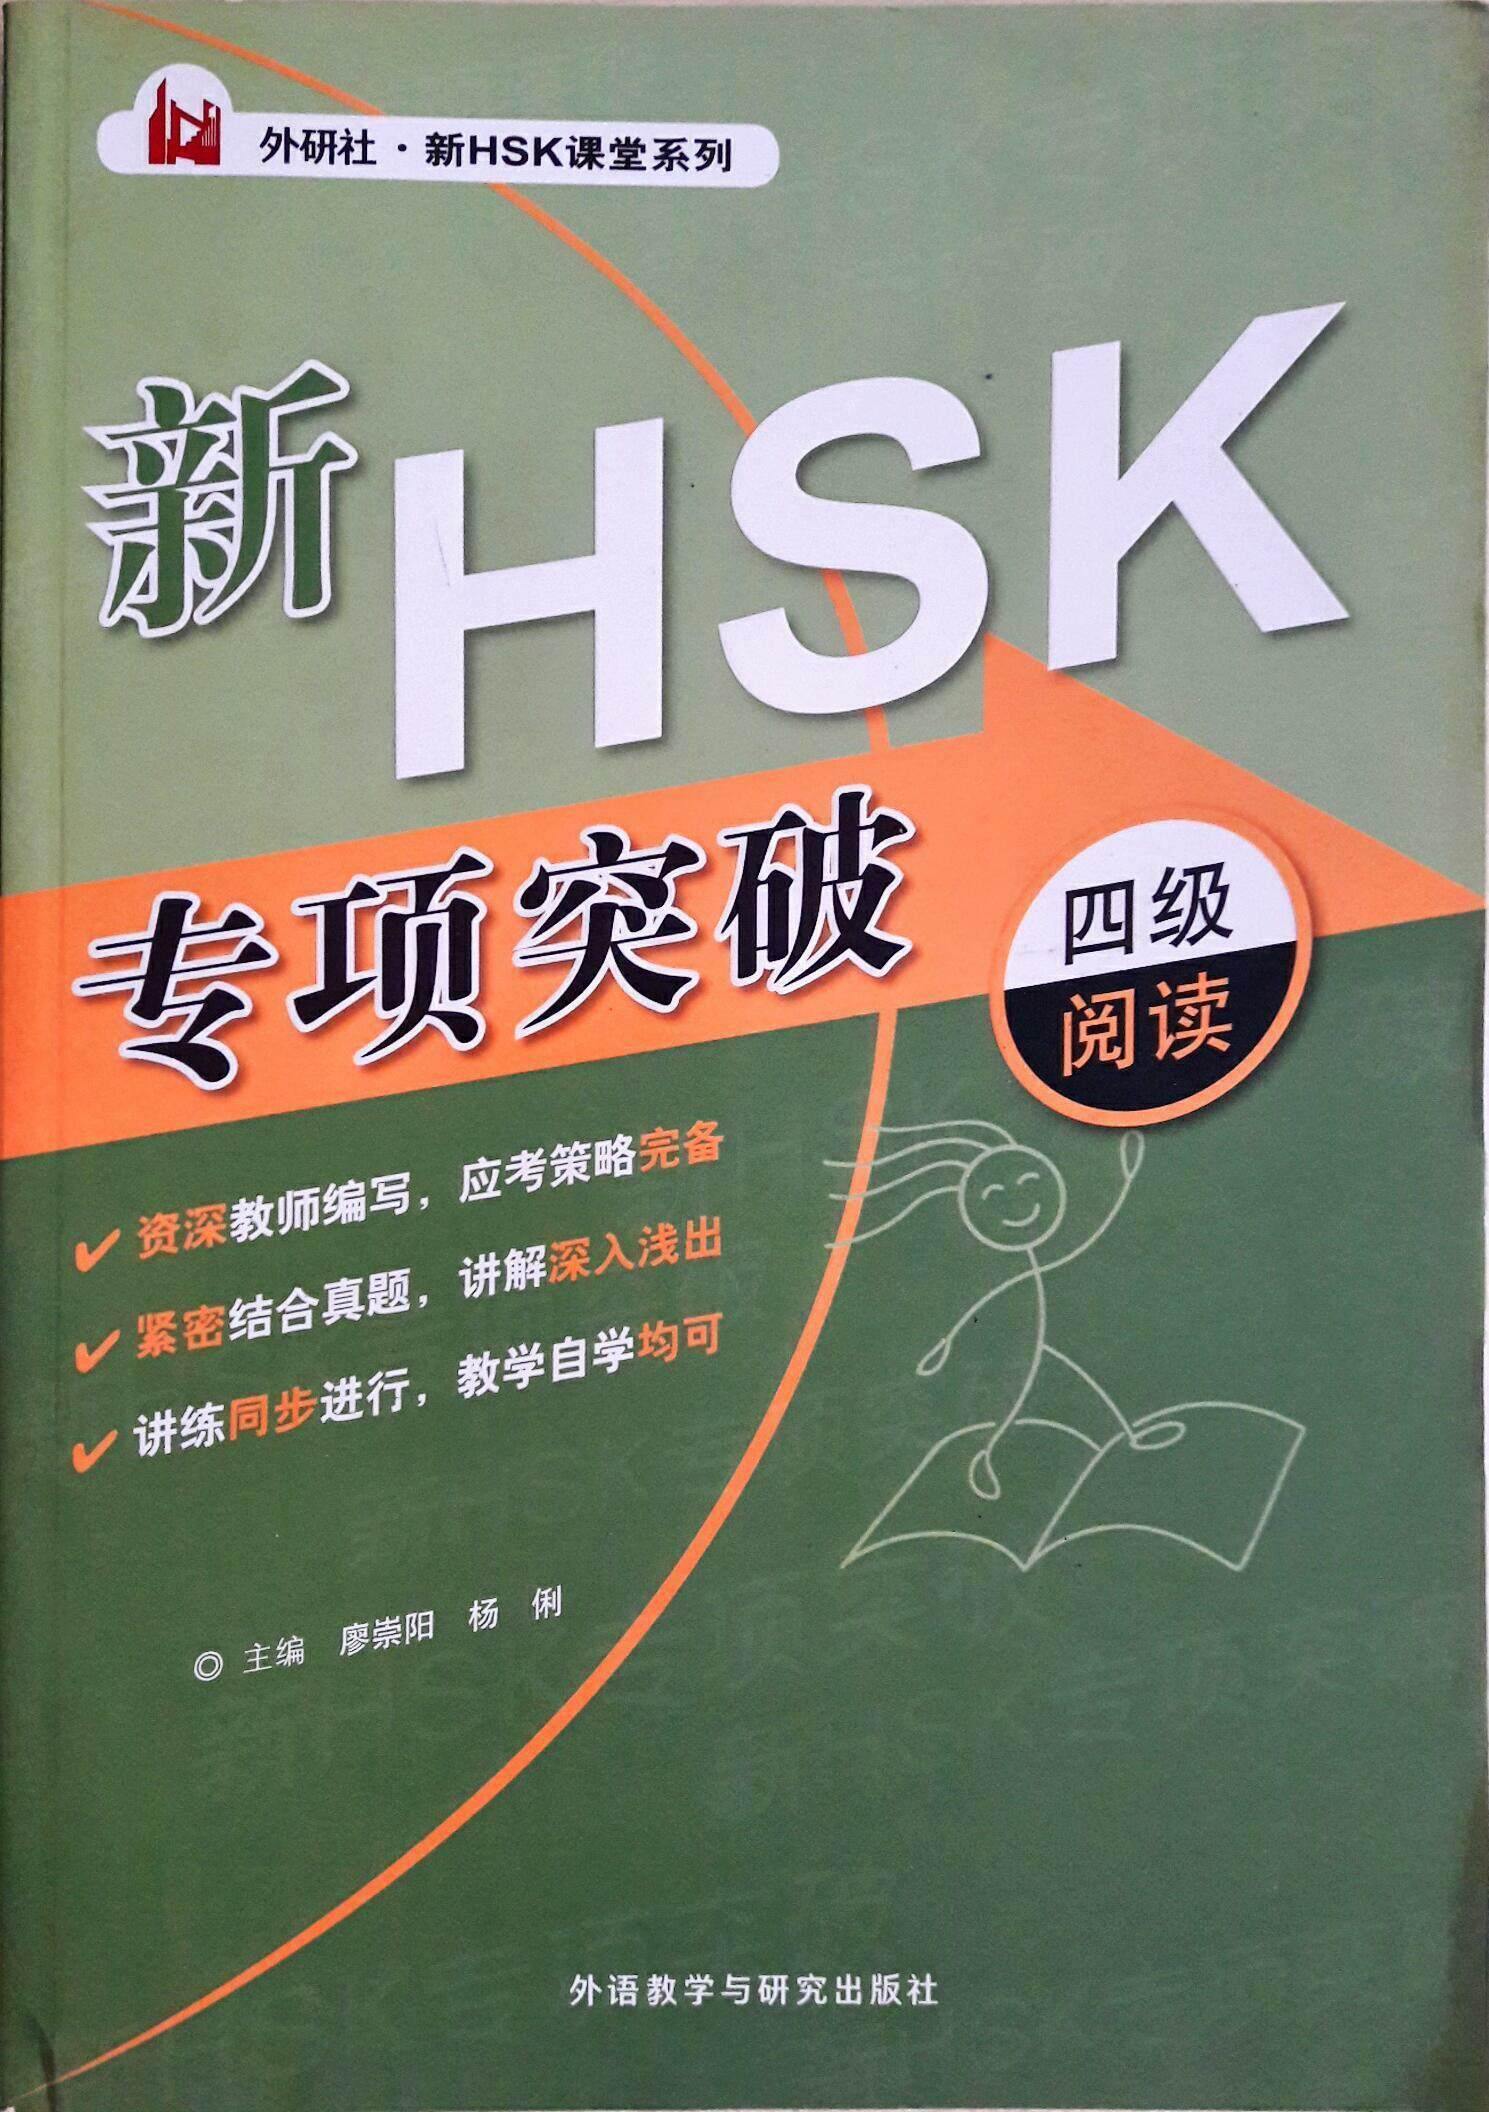 Chinese Book for HSK4: New HSK Profession Breakthrough Level 4(Reading)